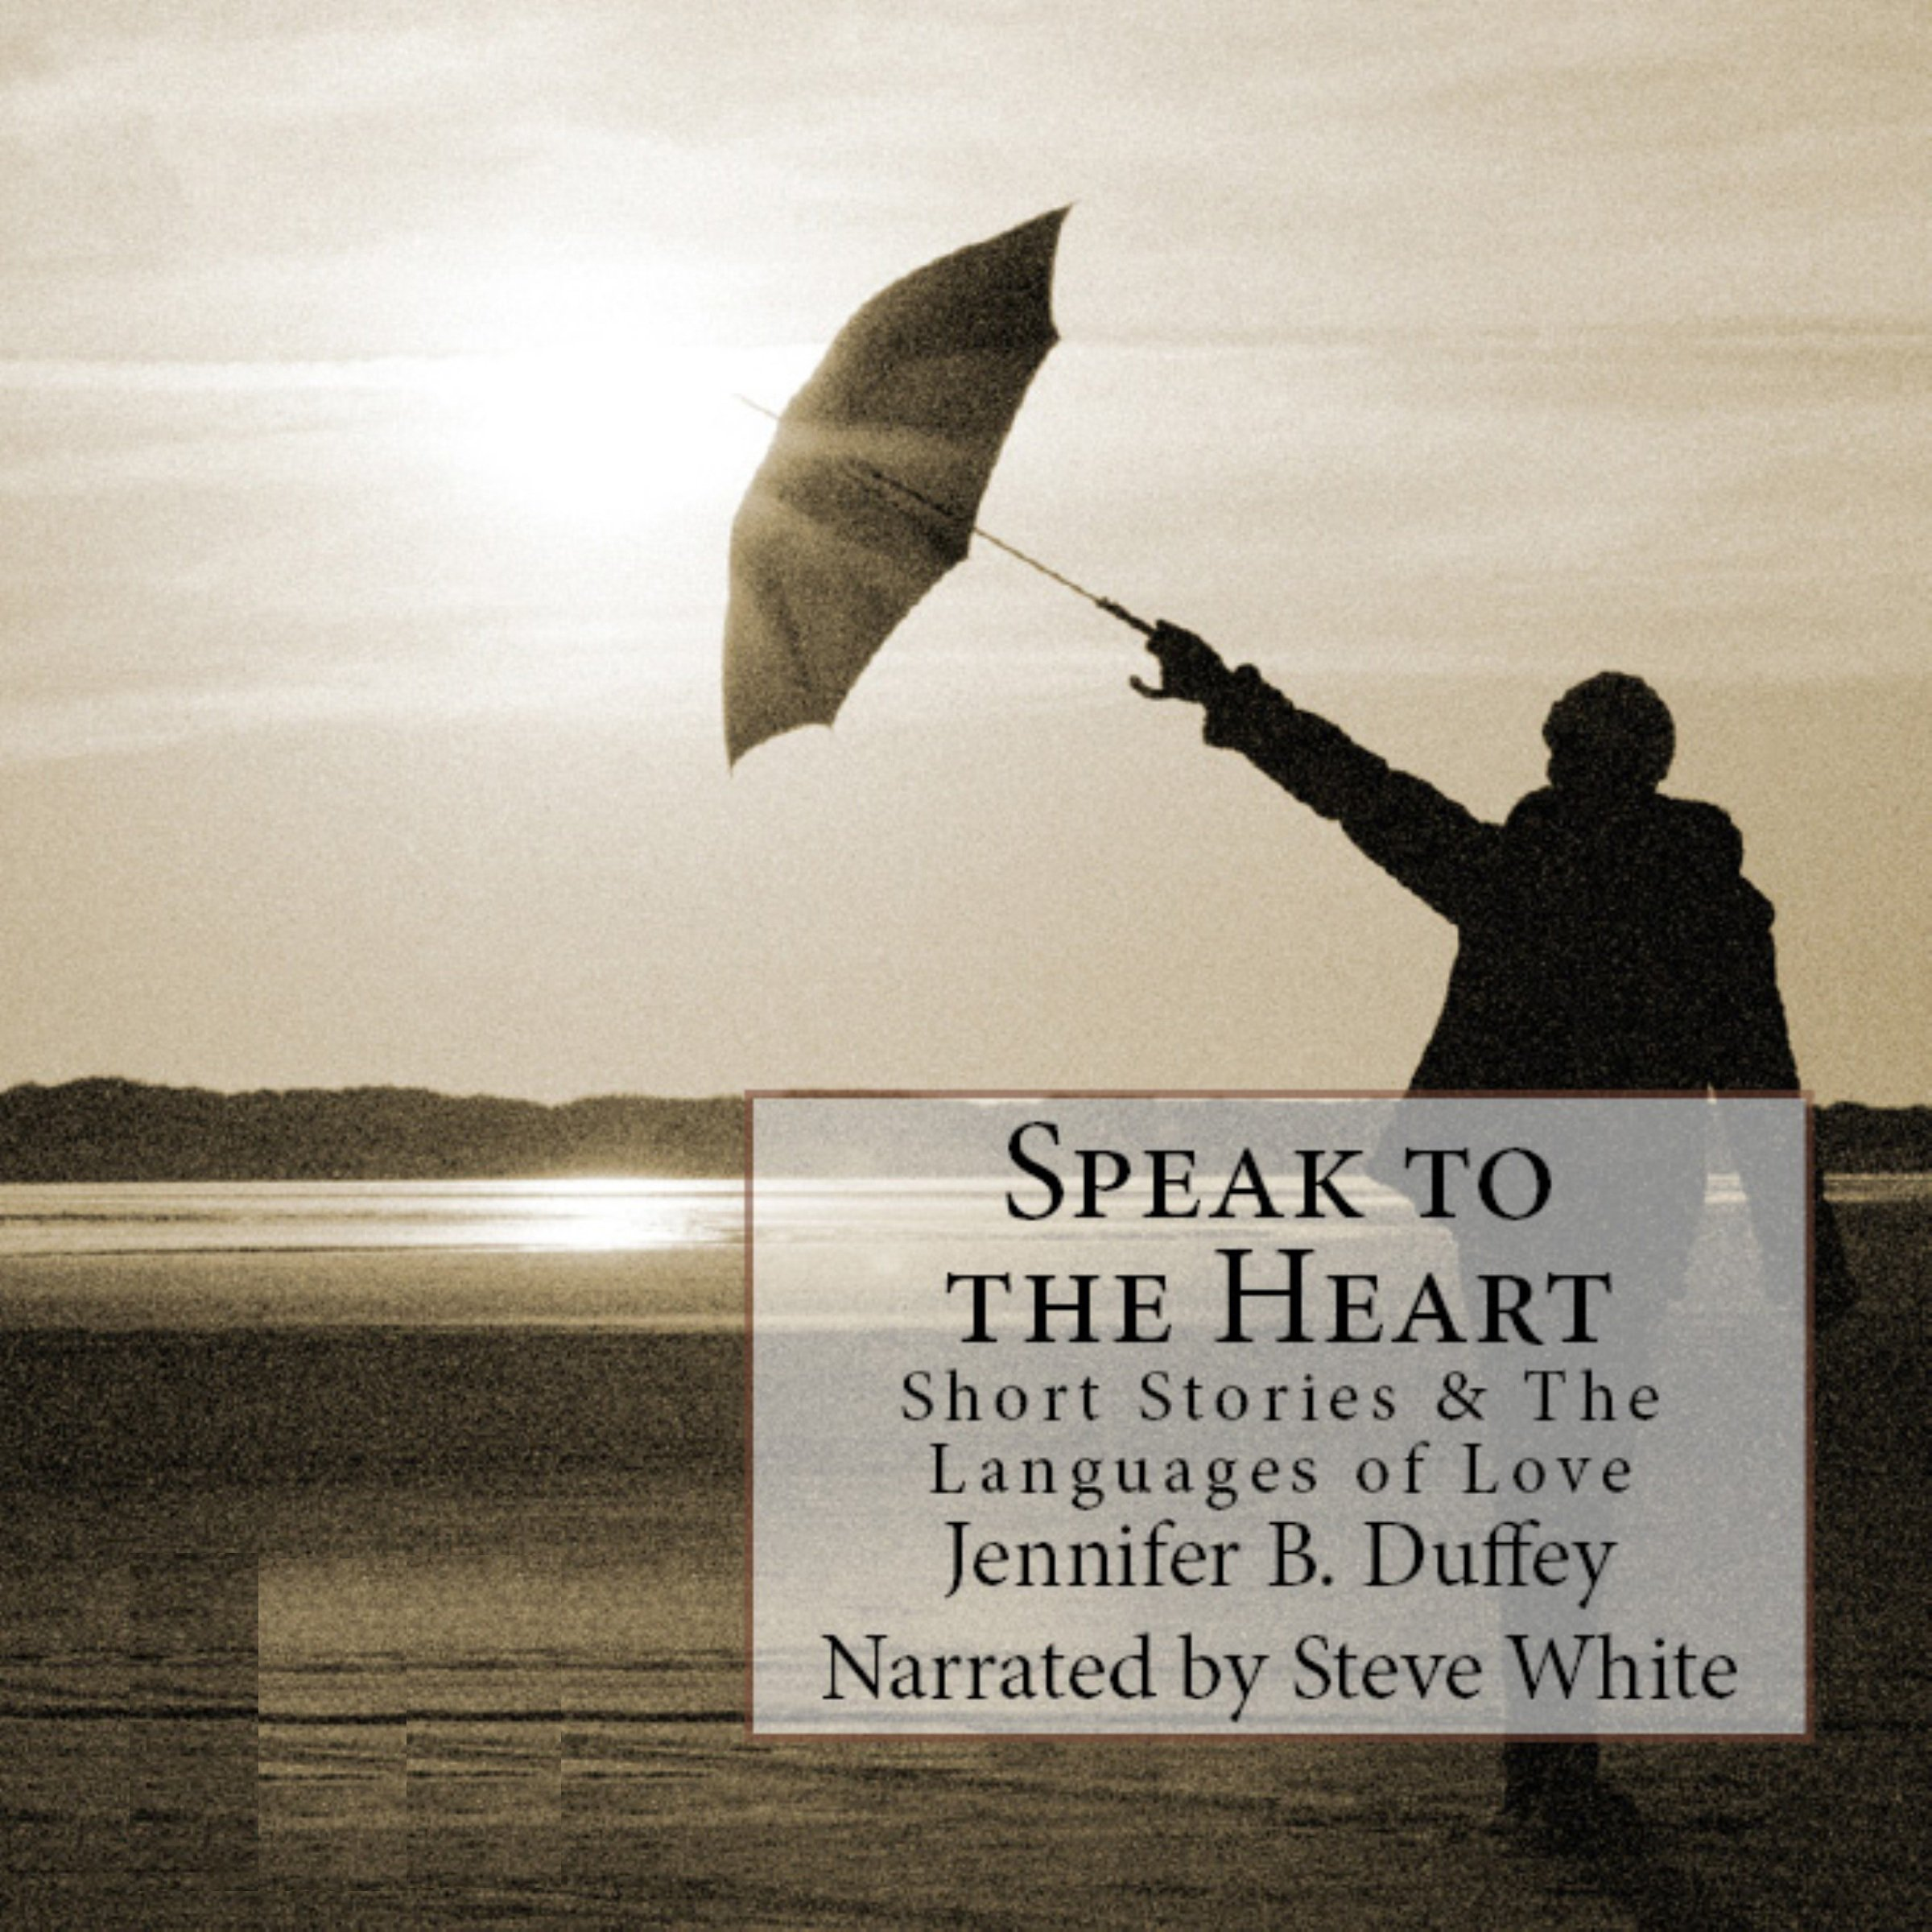 Speak to the Heart: Short Stories & the Languages of Love